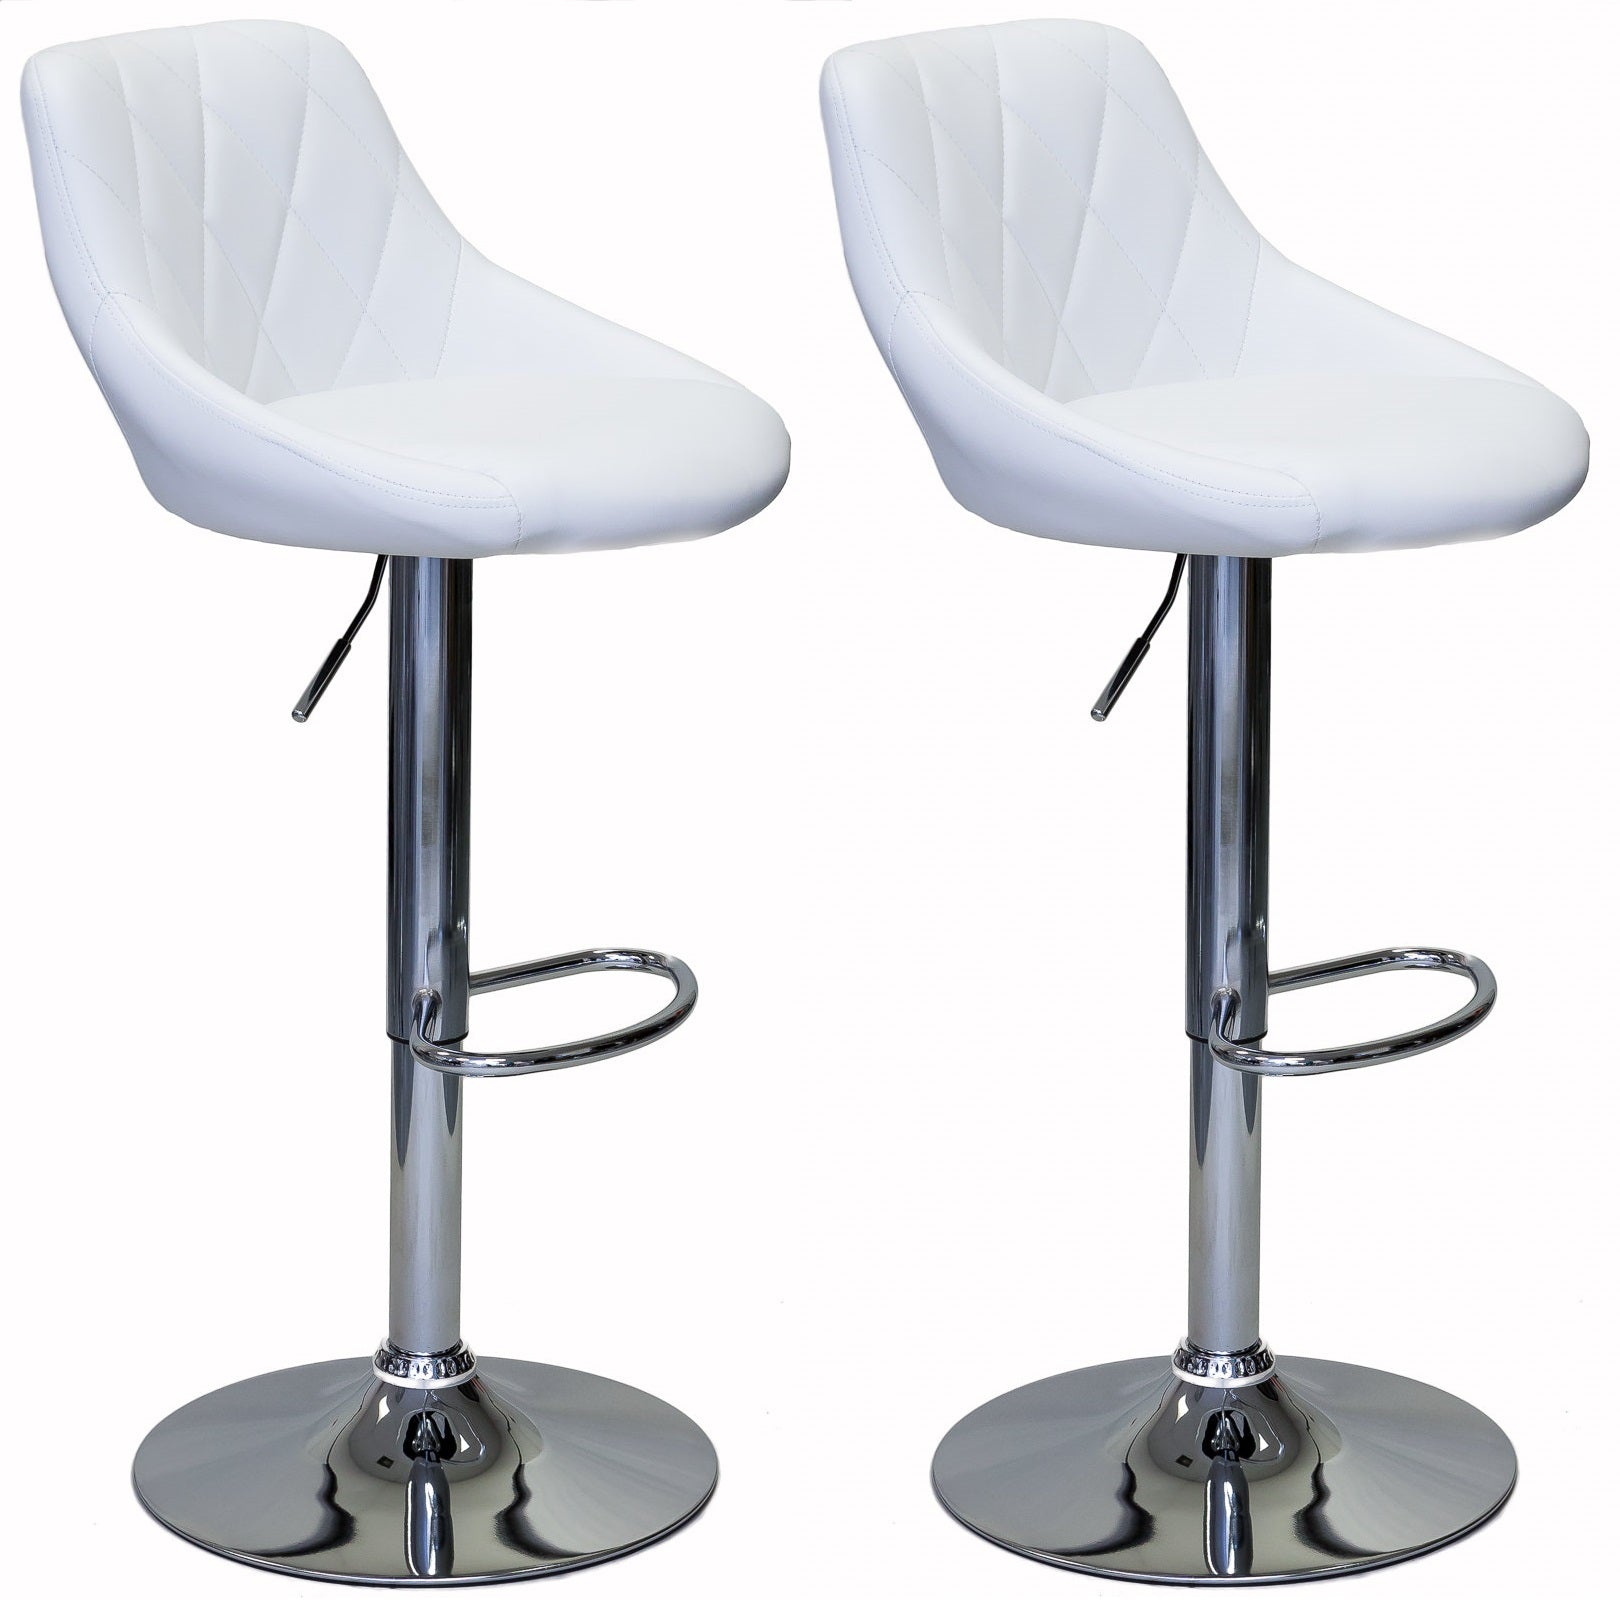 ViscoLogic Series GALLANT Height Adjustable Swivel 24 to 33 inch Bar Stool (Set of 2)